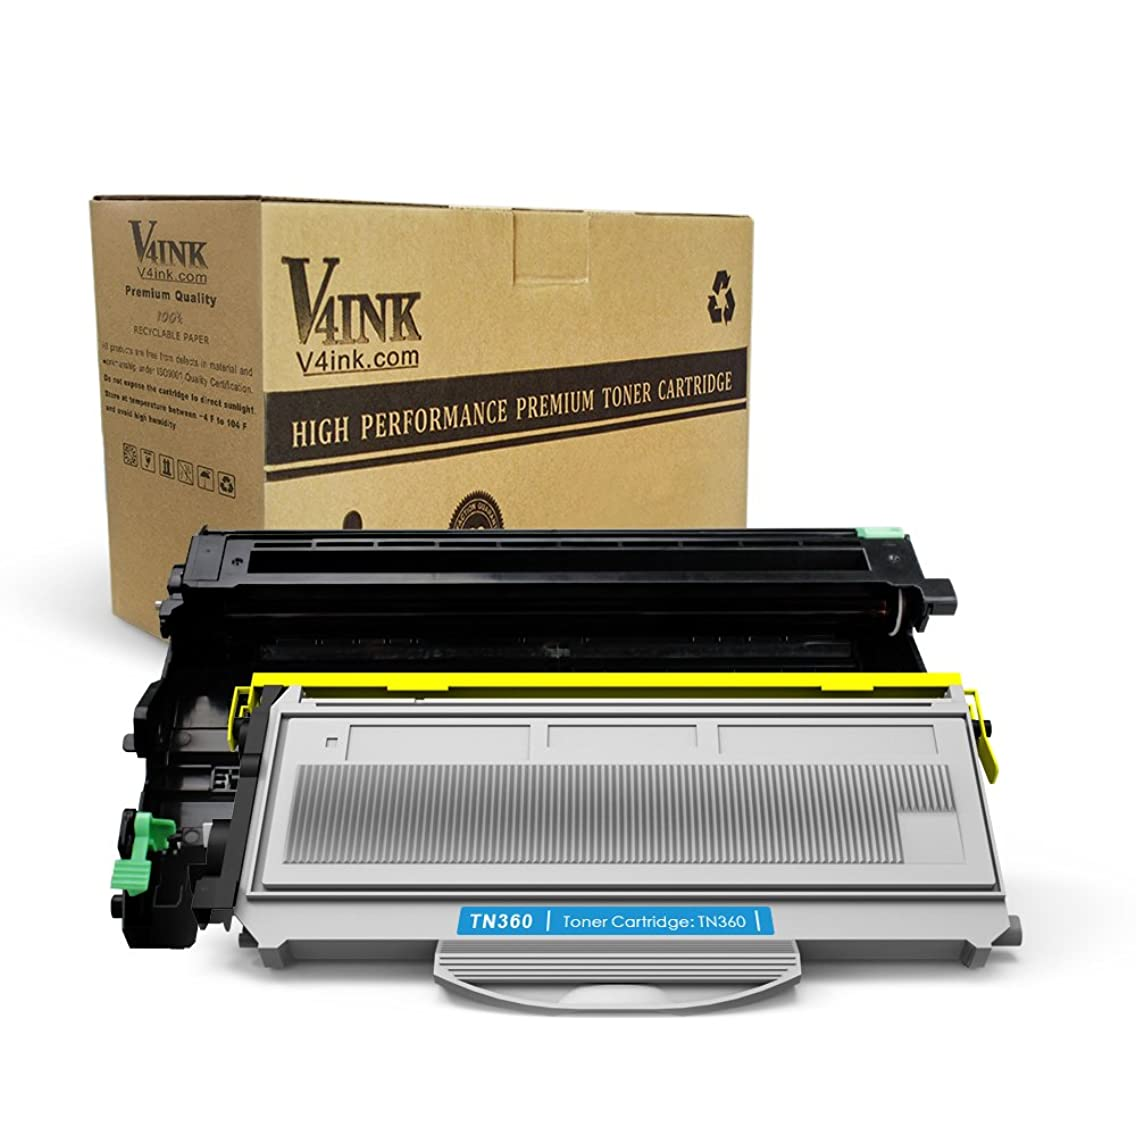 V4INK Compatible Toner Cartridge + Drum Replacement for Brother TN360 TN330 Toner + DR360 Drum Set for Brother HL-2140 HL 2150N 2170W Brother MFC-7340 MFC-7840W MFC 7440N 7345N DCP 7030-7040 Printer